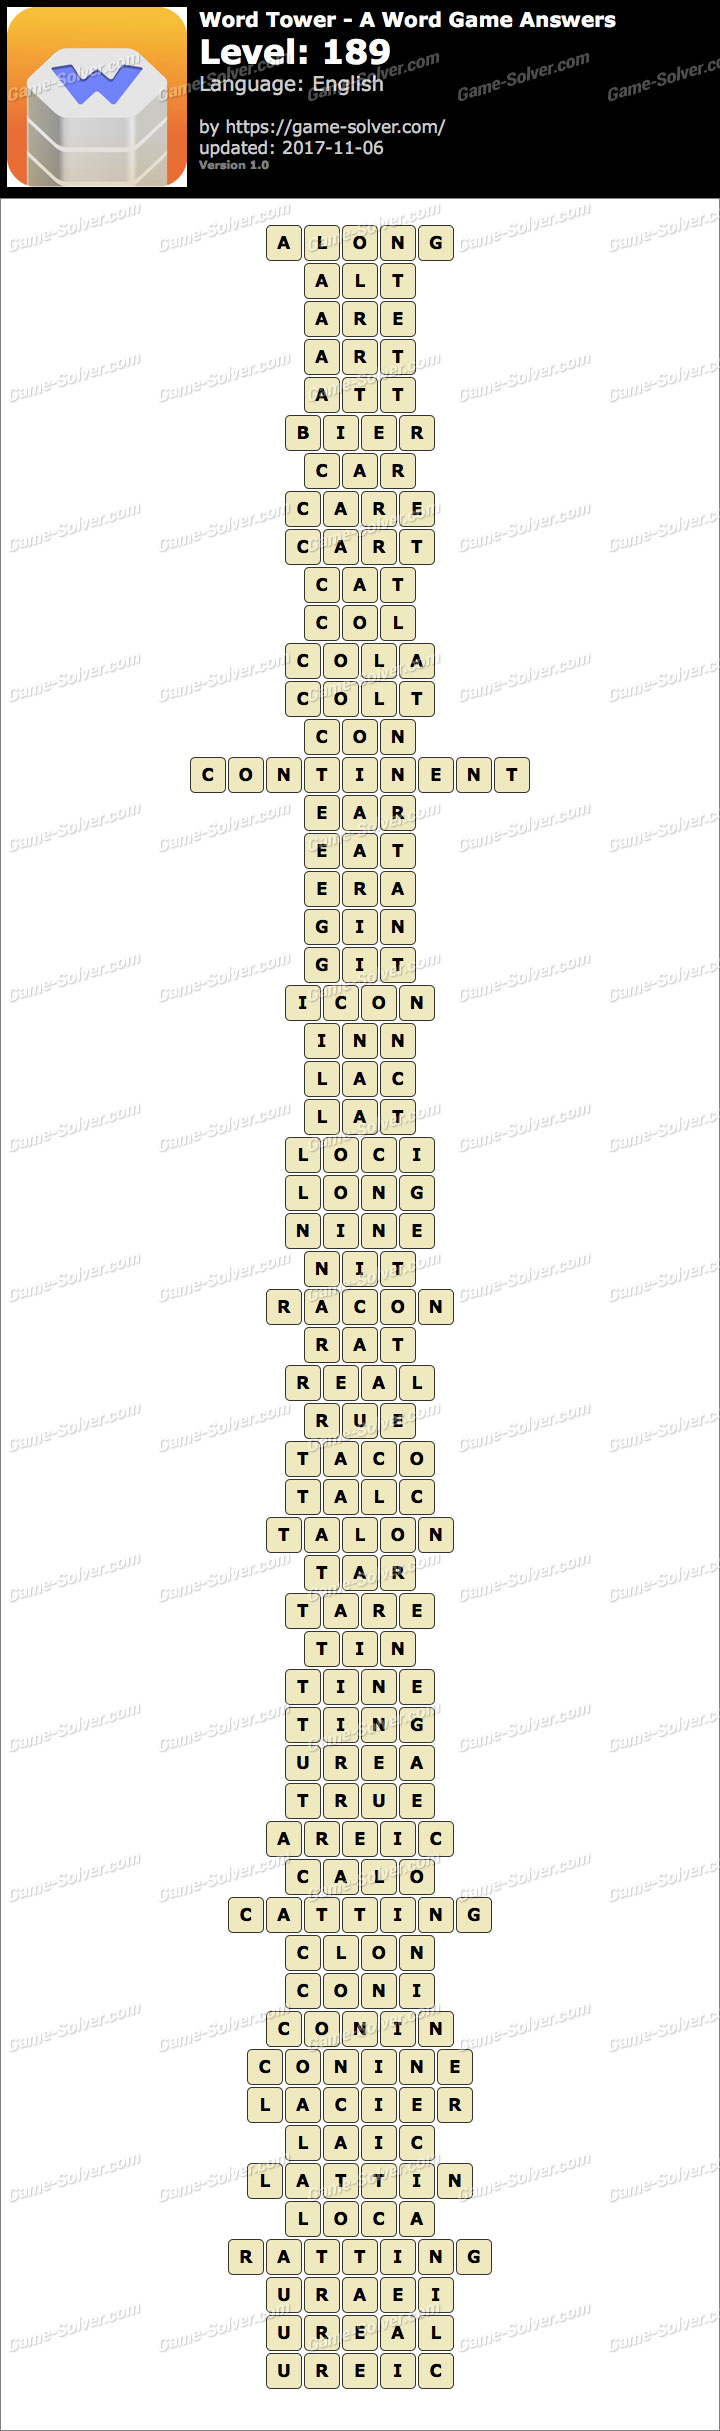 Word Tower Level 189 Answers